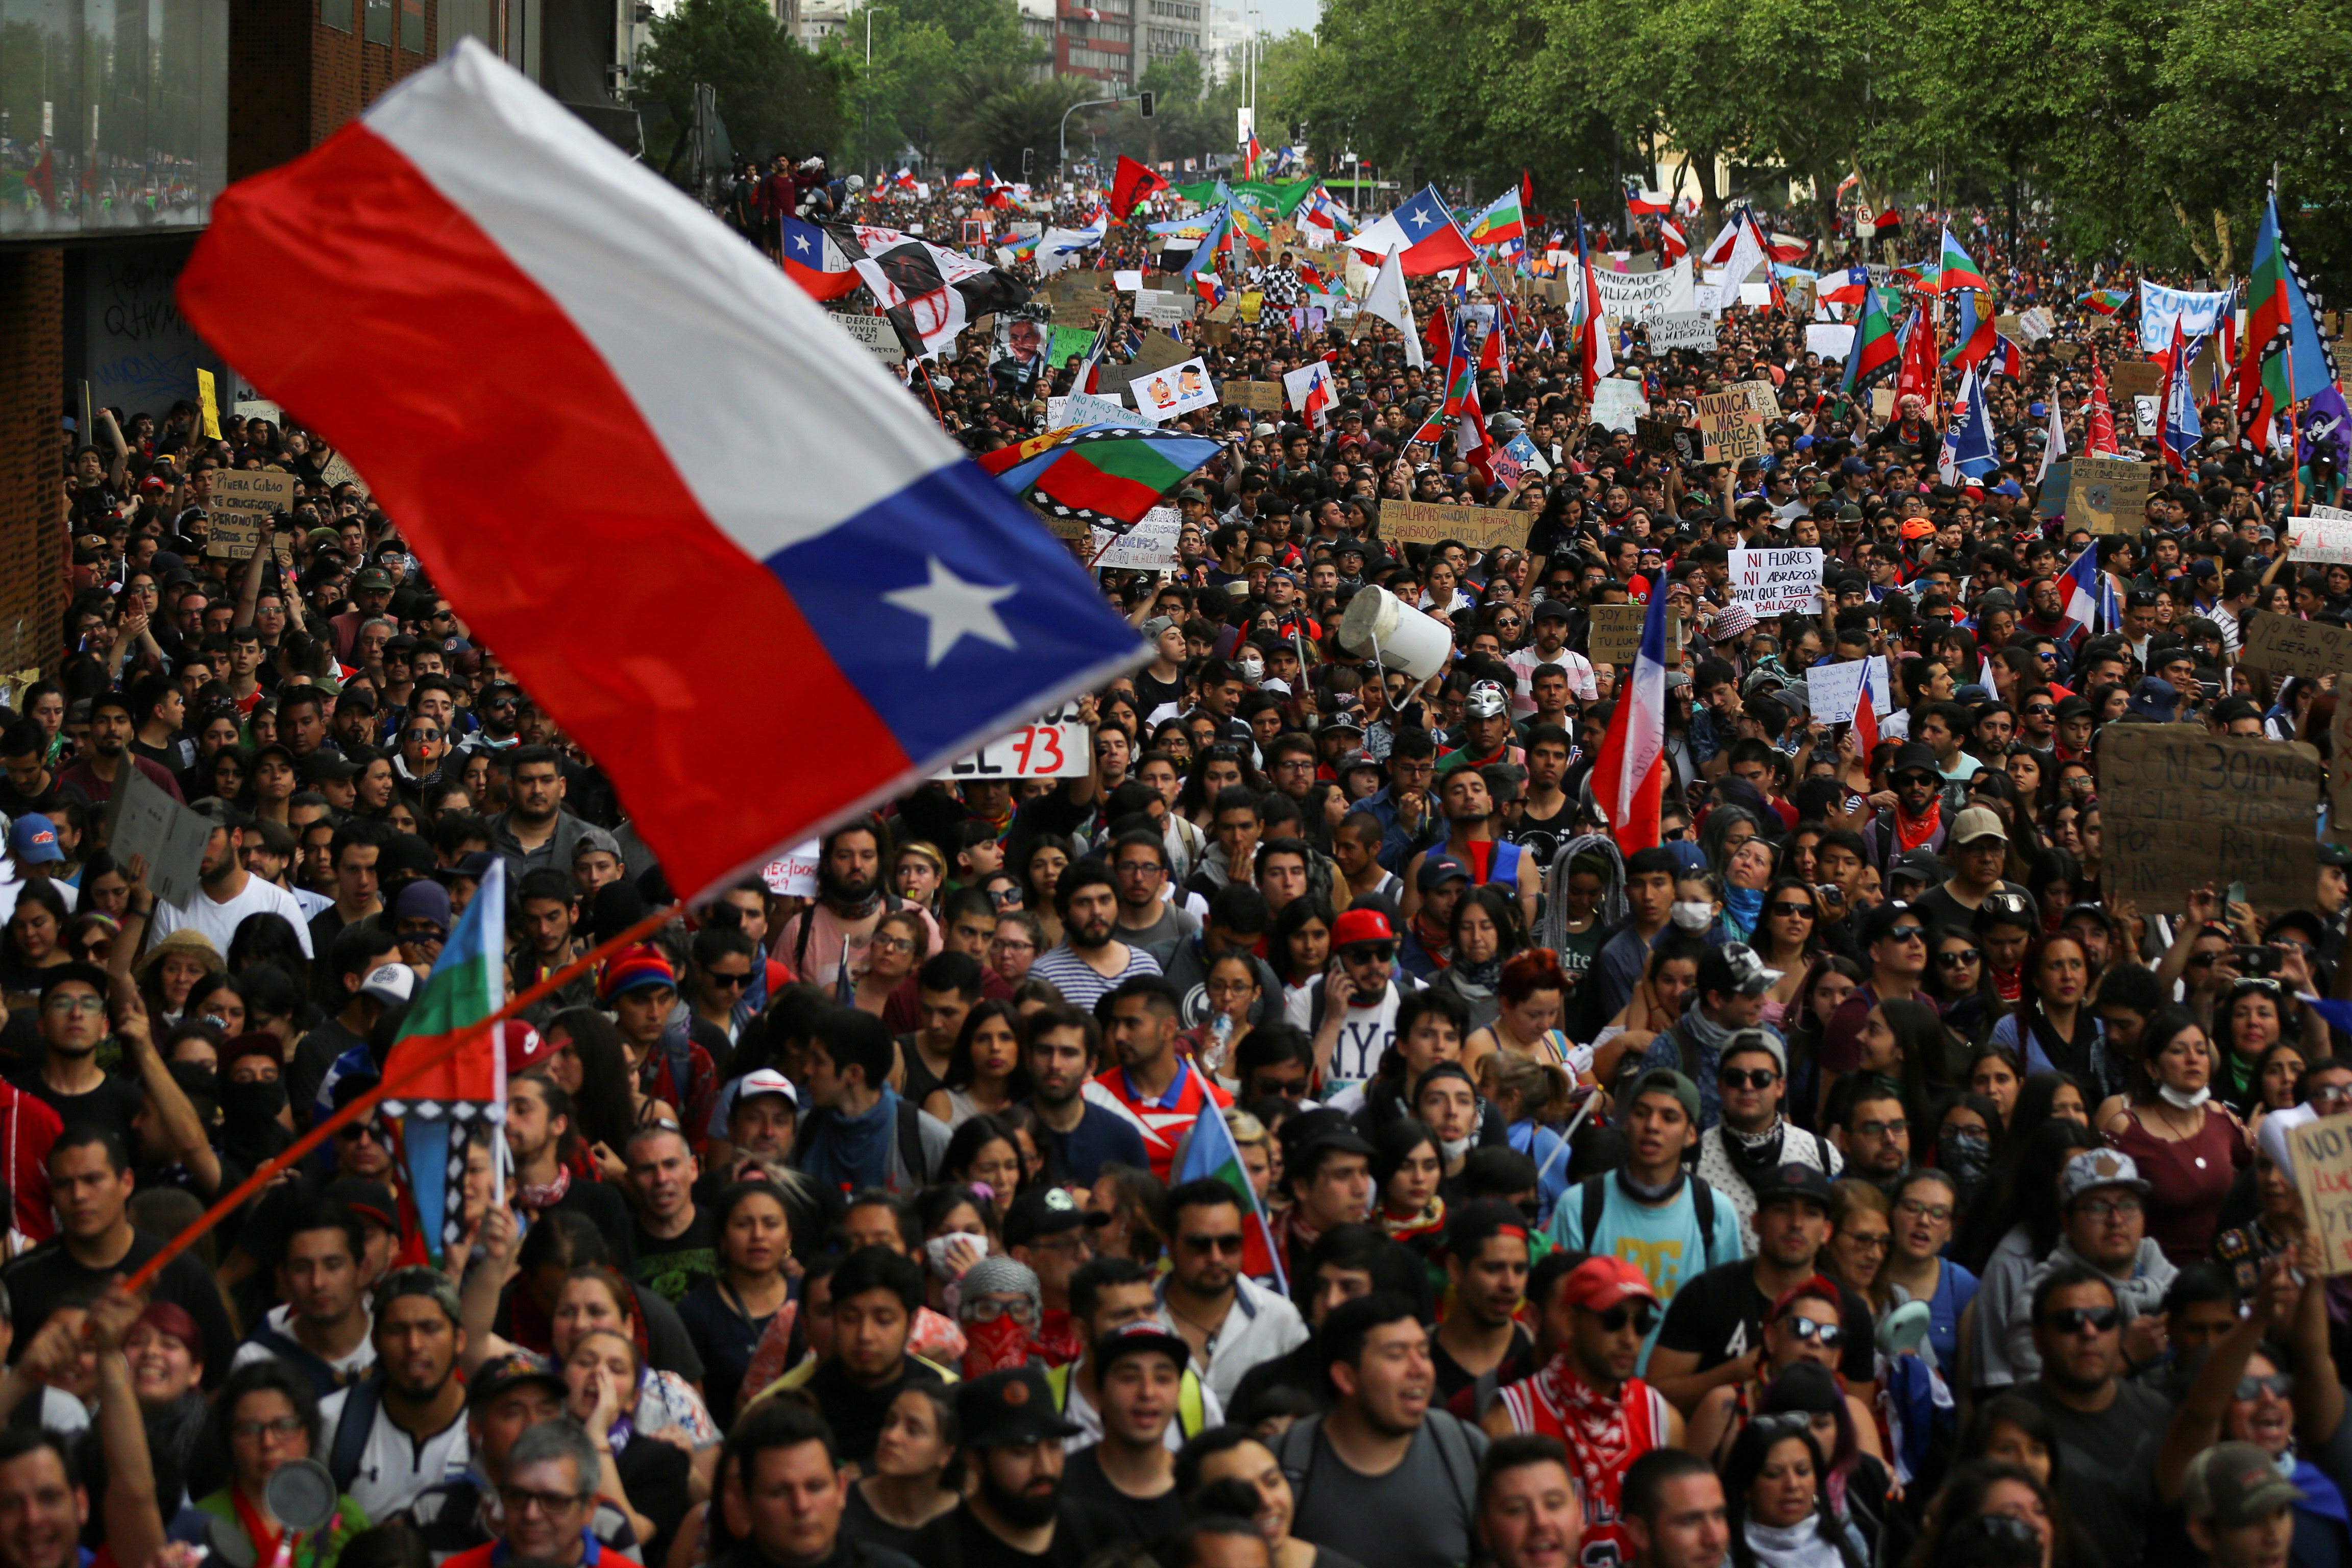 Chile announced yesterday that it would no longer host the Apec Leaders' Week and COP25 summit after civil unrest over income inequality descended into violence. — Reuters pic